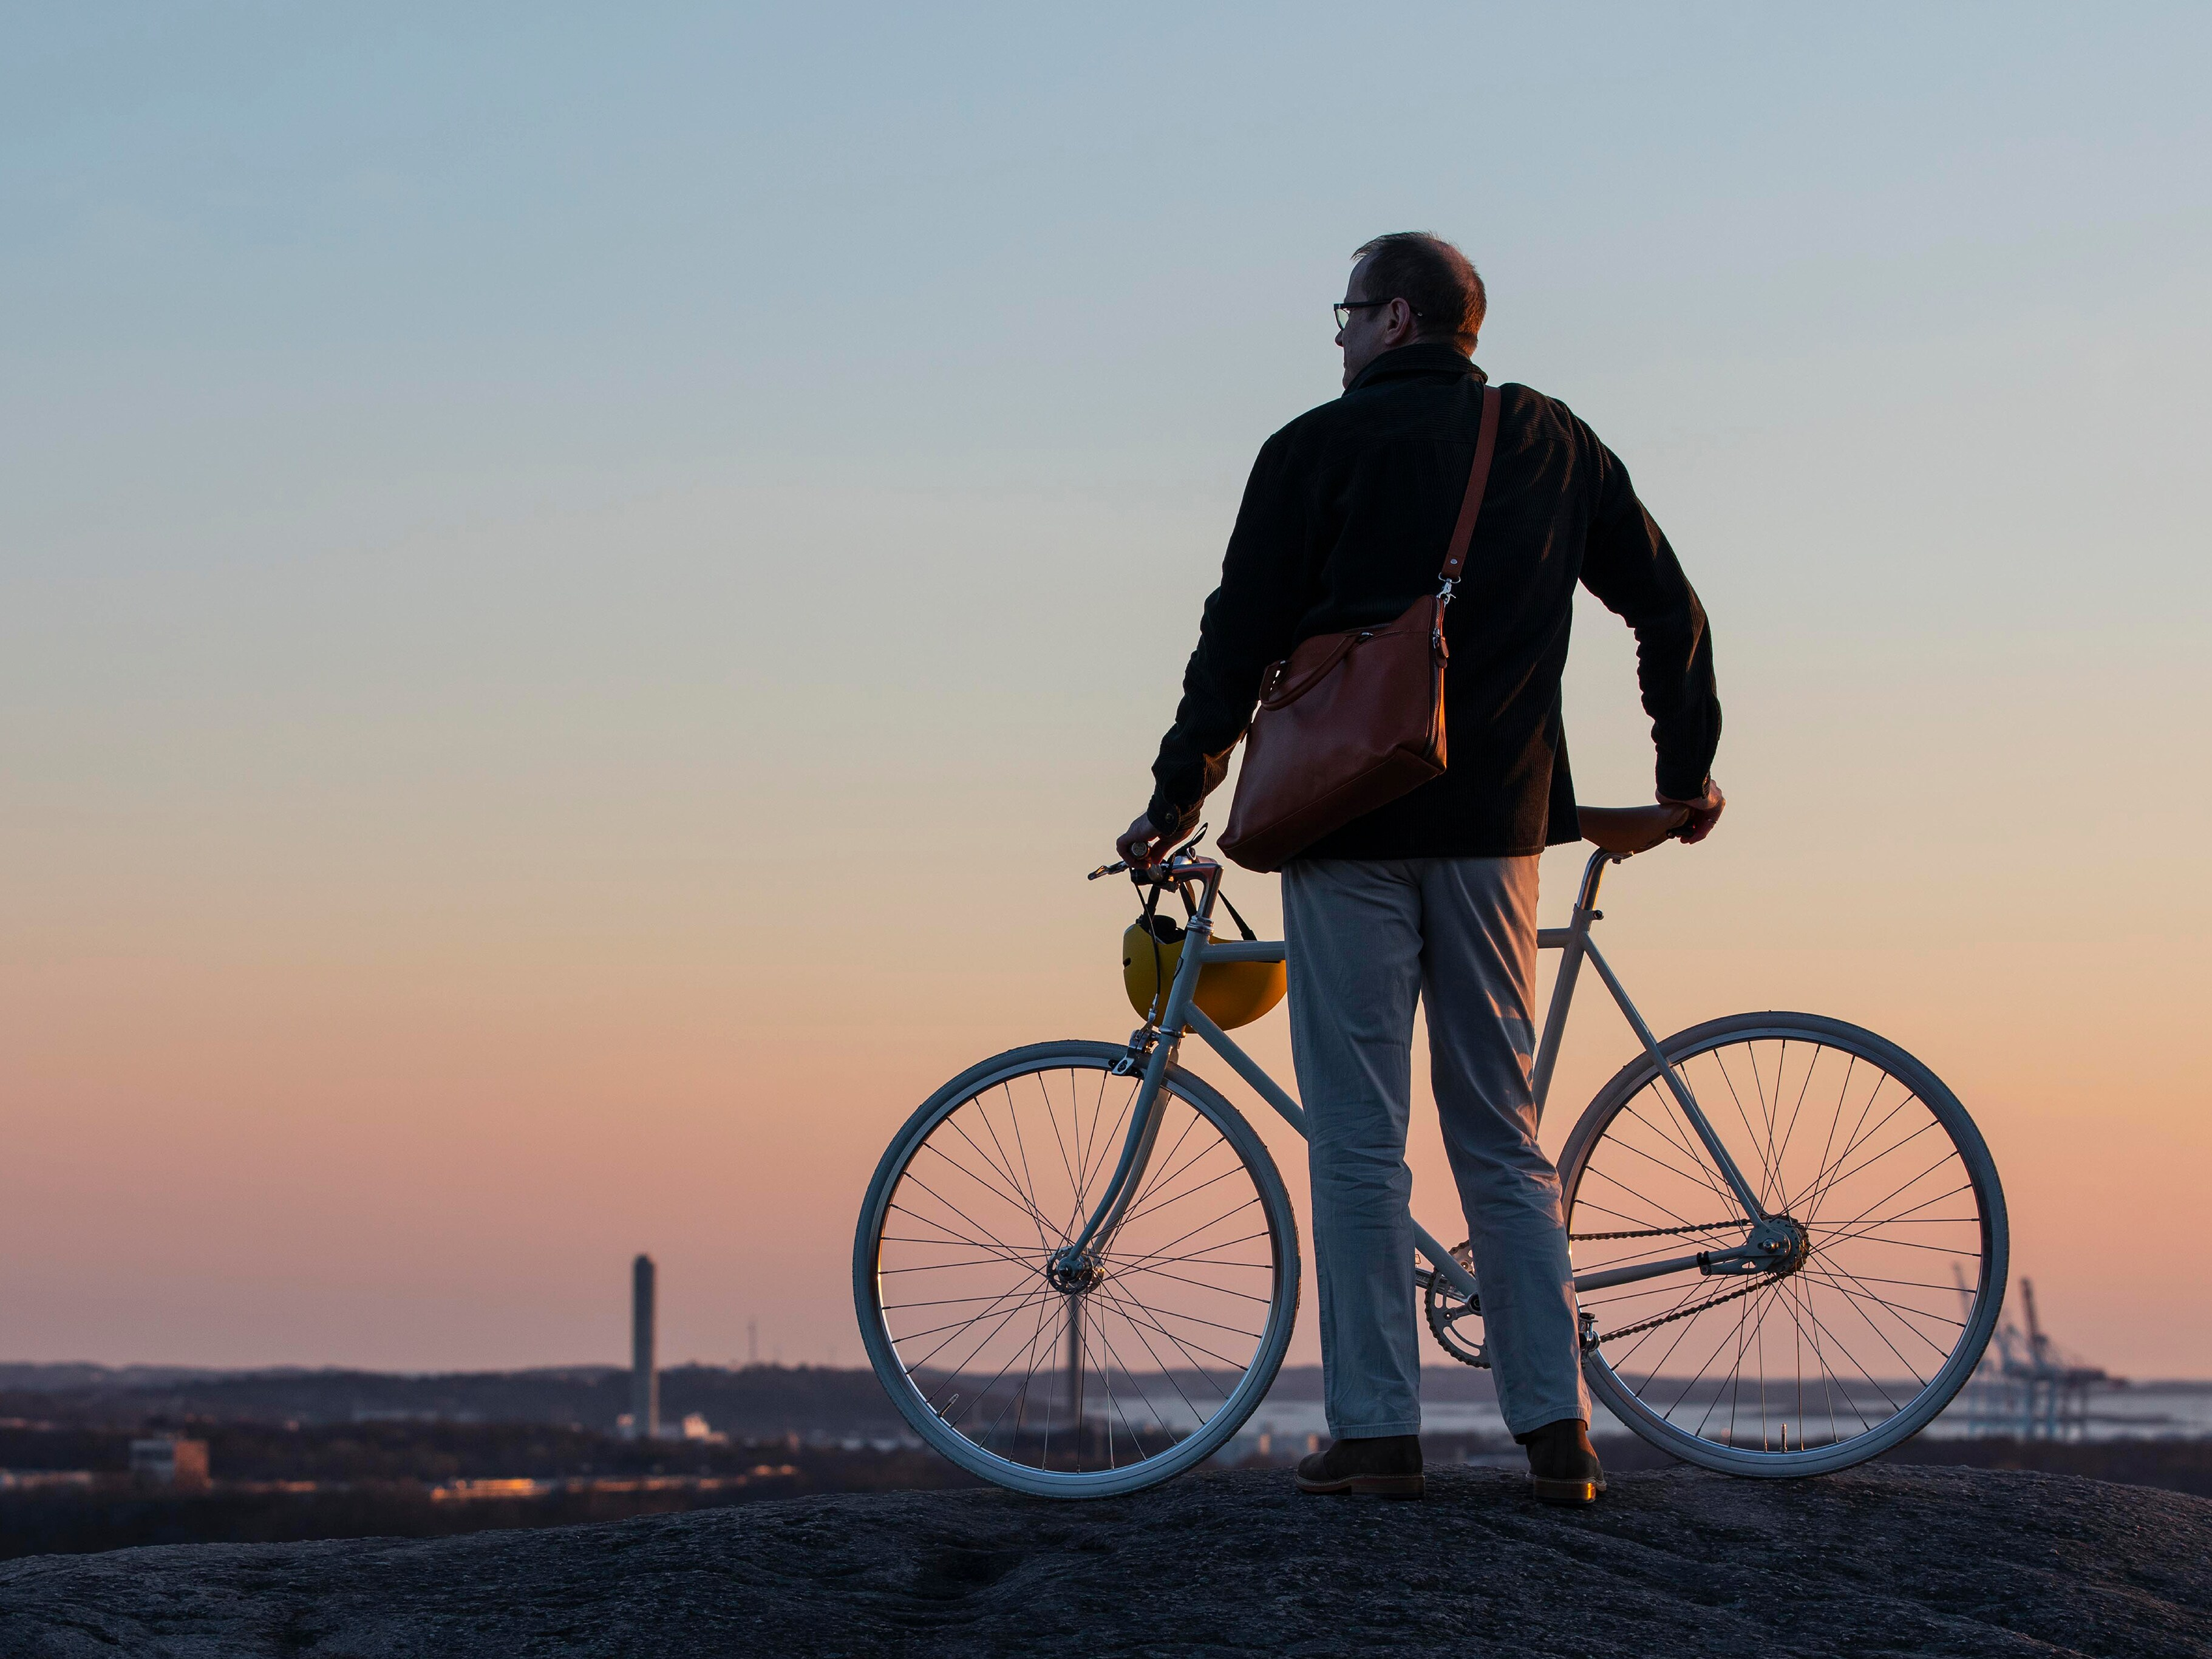 Robert Thomson, professor of vehicle safety at Gothenburg's Chalmers University, stands by his bike